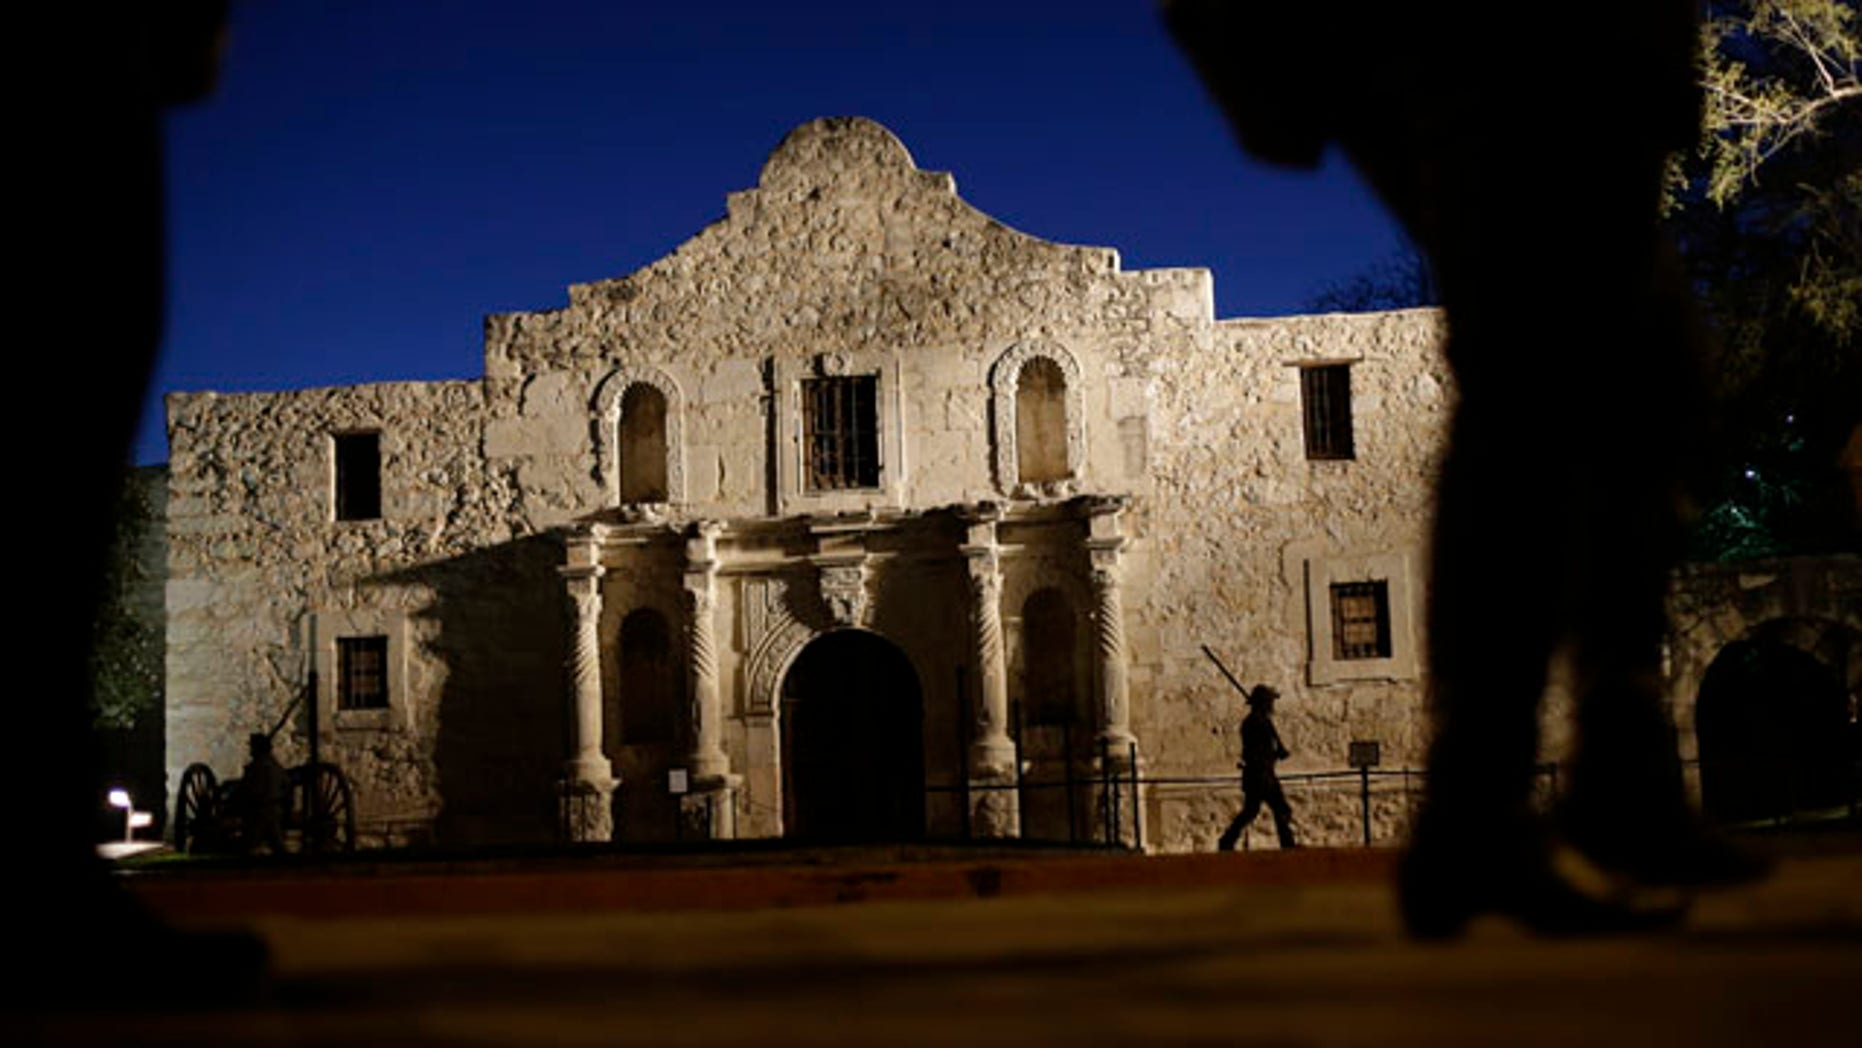 File - In this March 6, 2013, file photo, Dan Phillips, a member of the San Antonio Living History Association, patrols the Alamo during a pre-dawn memorial ceremony to remember the 1836 Battle of the Alamo and those who fell on both sides. (AP Photo/Eric Gay, File)